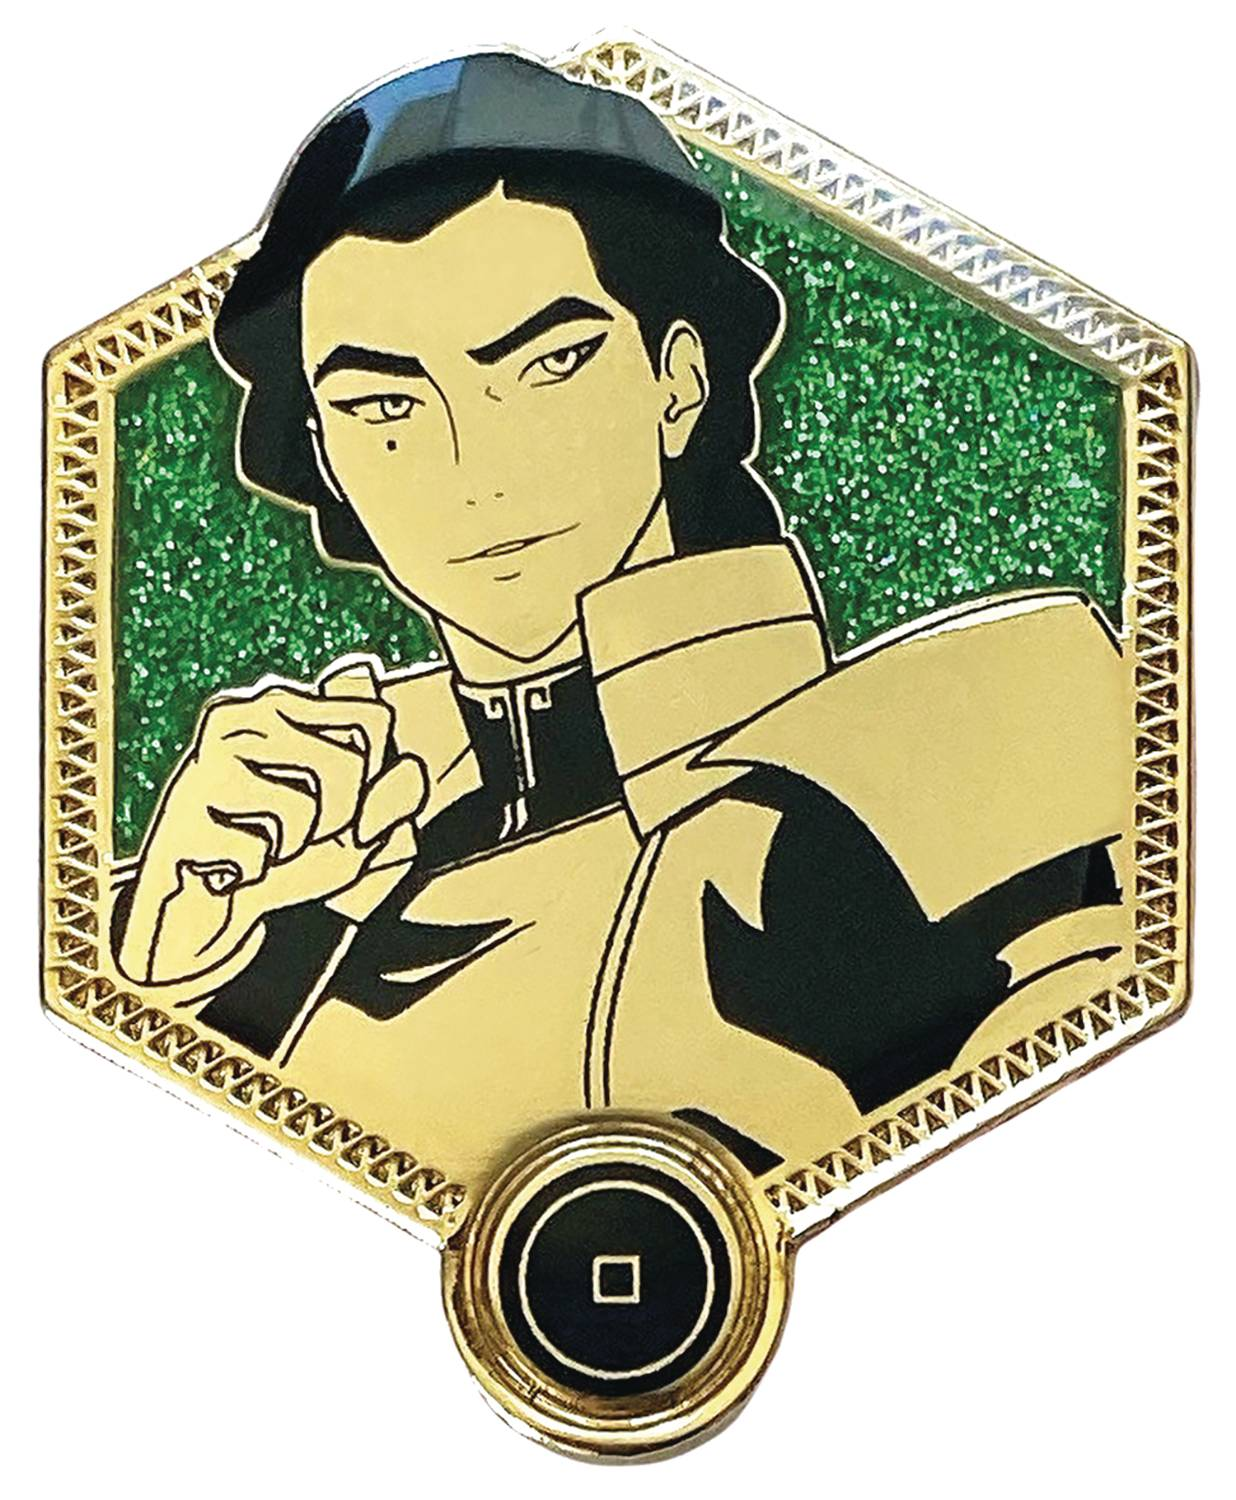 LEGEND OF KORRA GOLDEN KUVIRA PIN